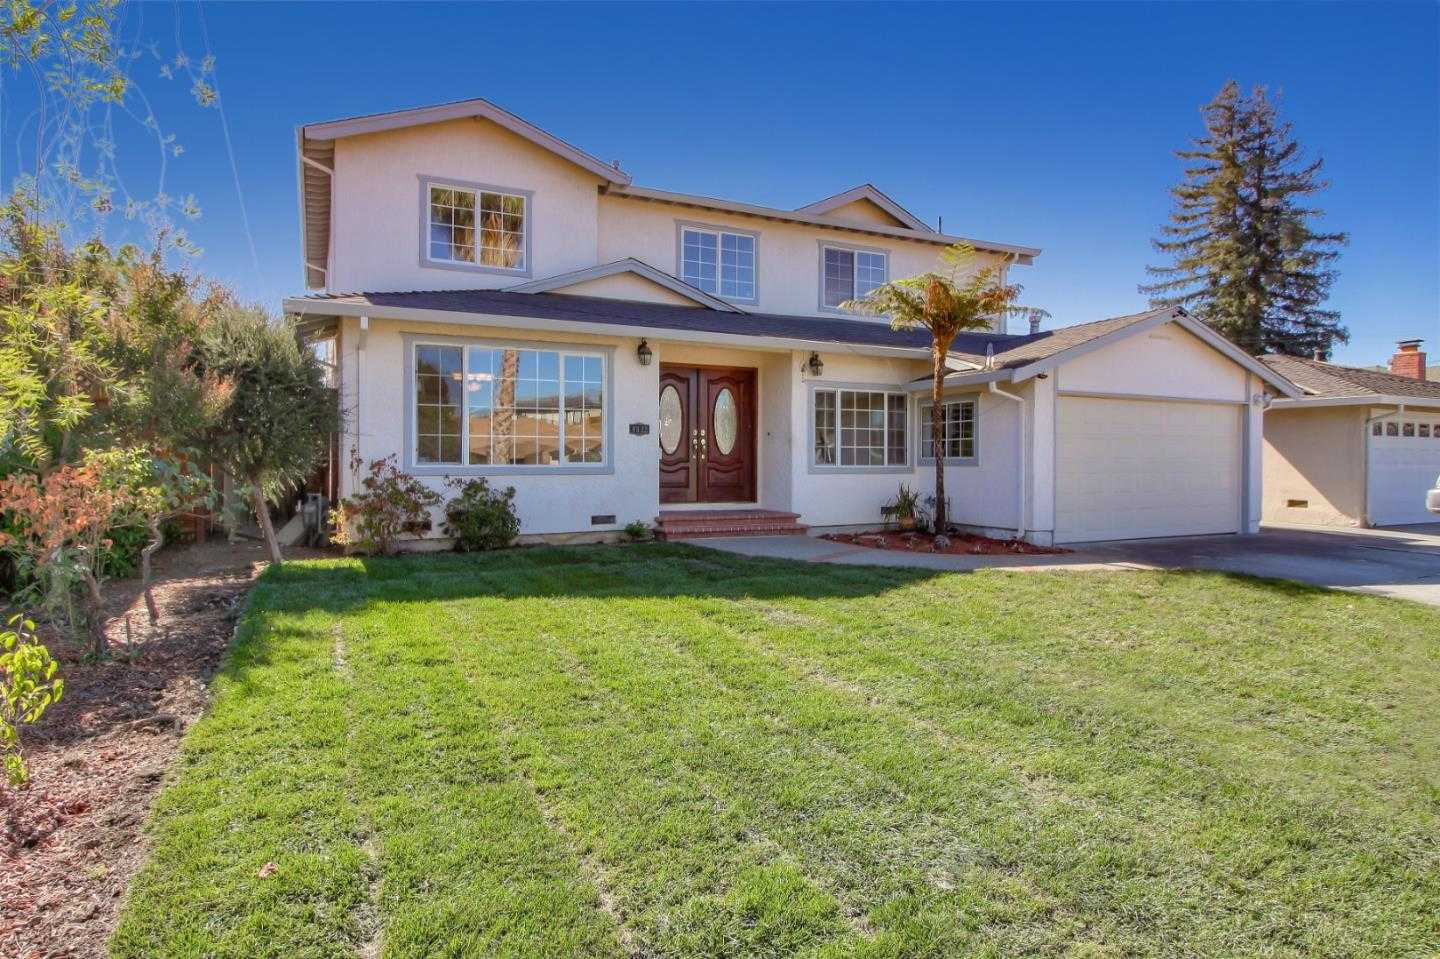 $1,798,000 - 5Br/3Ba -  for Sale in San Jose